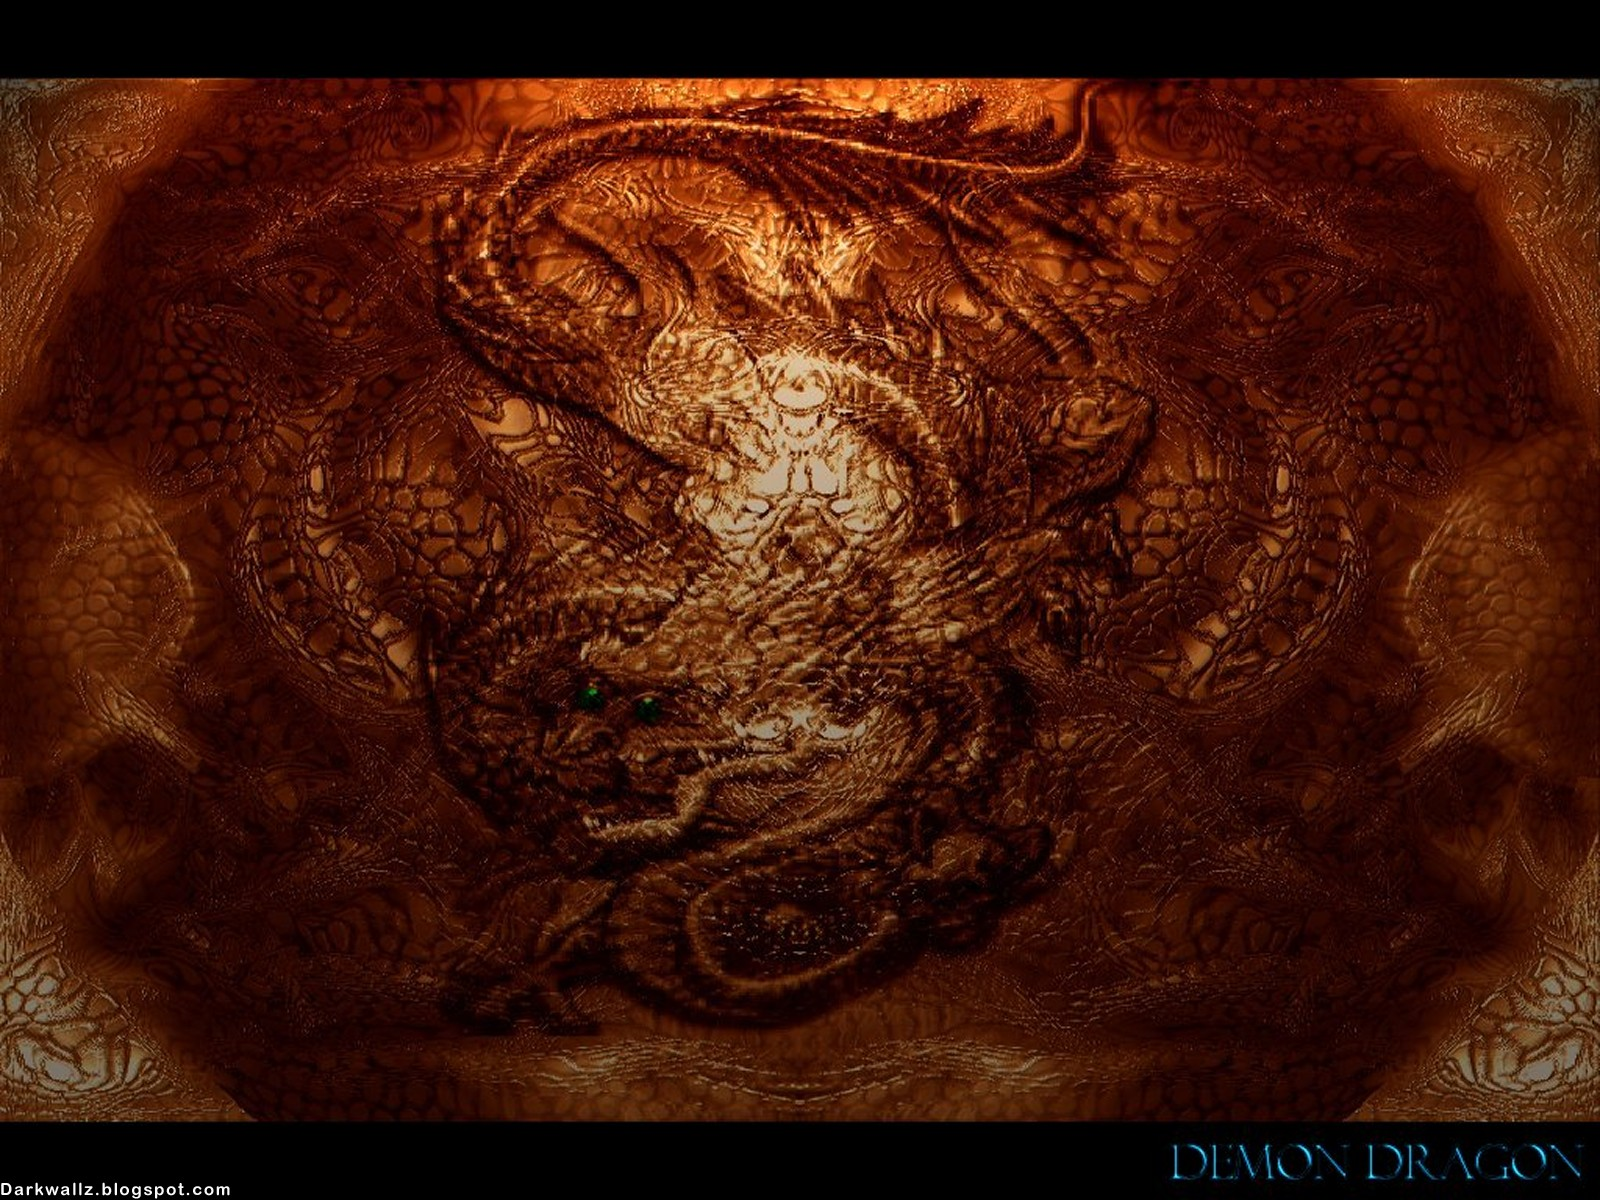 http://4.bp.blogspot.com/_-jo2ZCYhKaY/S62qBLyQEOI/AAAAAAAAHdc/zpS2Bo7DQ_M/s1600/Dark_Dragons_Wallpapers_21+(darkwallz.blogspot.com).jpg